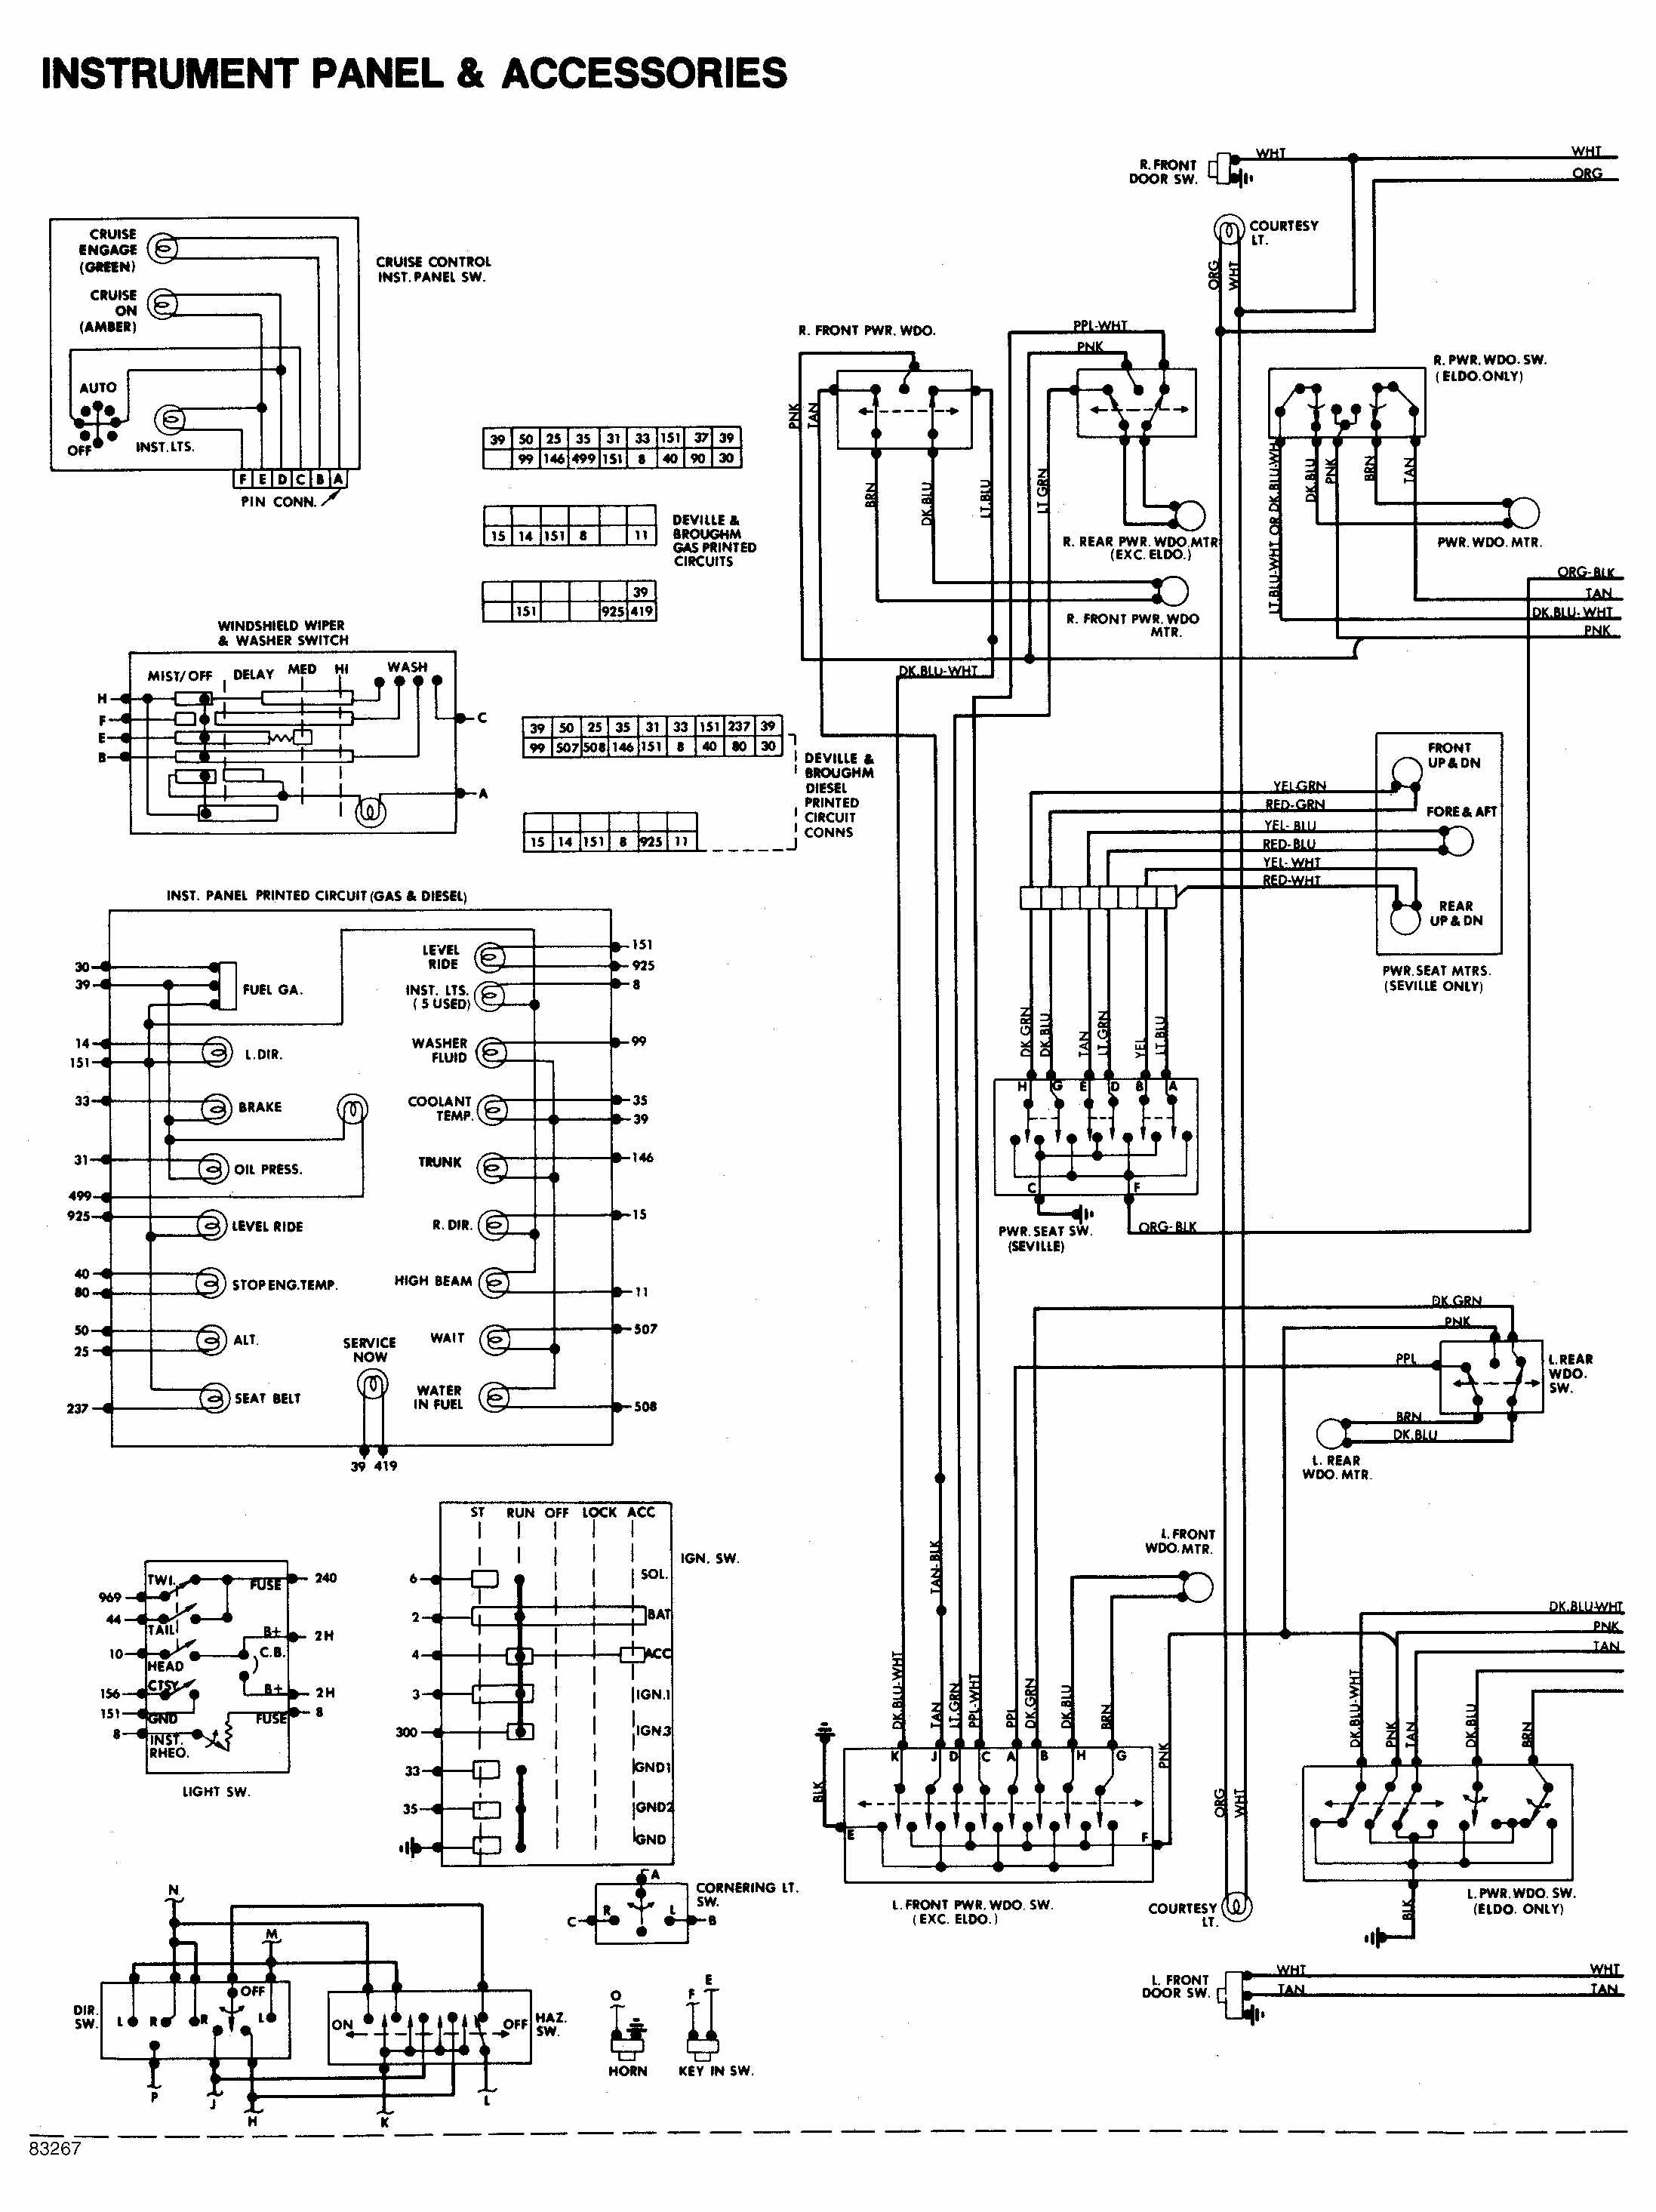 69 Corvette Fuse Box | Wiring Diagram on 72 nova a pillar, 72 nova steering column, 72 nova power steering pump, 68 nova fuse box, 72 nova quarter panel, 72 nova wiring harness, 72 nova fuel pump, 72 nova engine, 67 nova fuse box, 72 nova tail light, 72 nova gas tank, 72 nova dash gauges, 72 nova wiper arm, 72 nova front seat, 72 nova steering wheel, 72 nova ignition switch, 72 nova headlight wiring, 71 nova fuse box, 1975 nova fuse box, 69 nova fuse box,